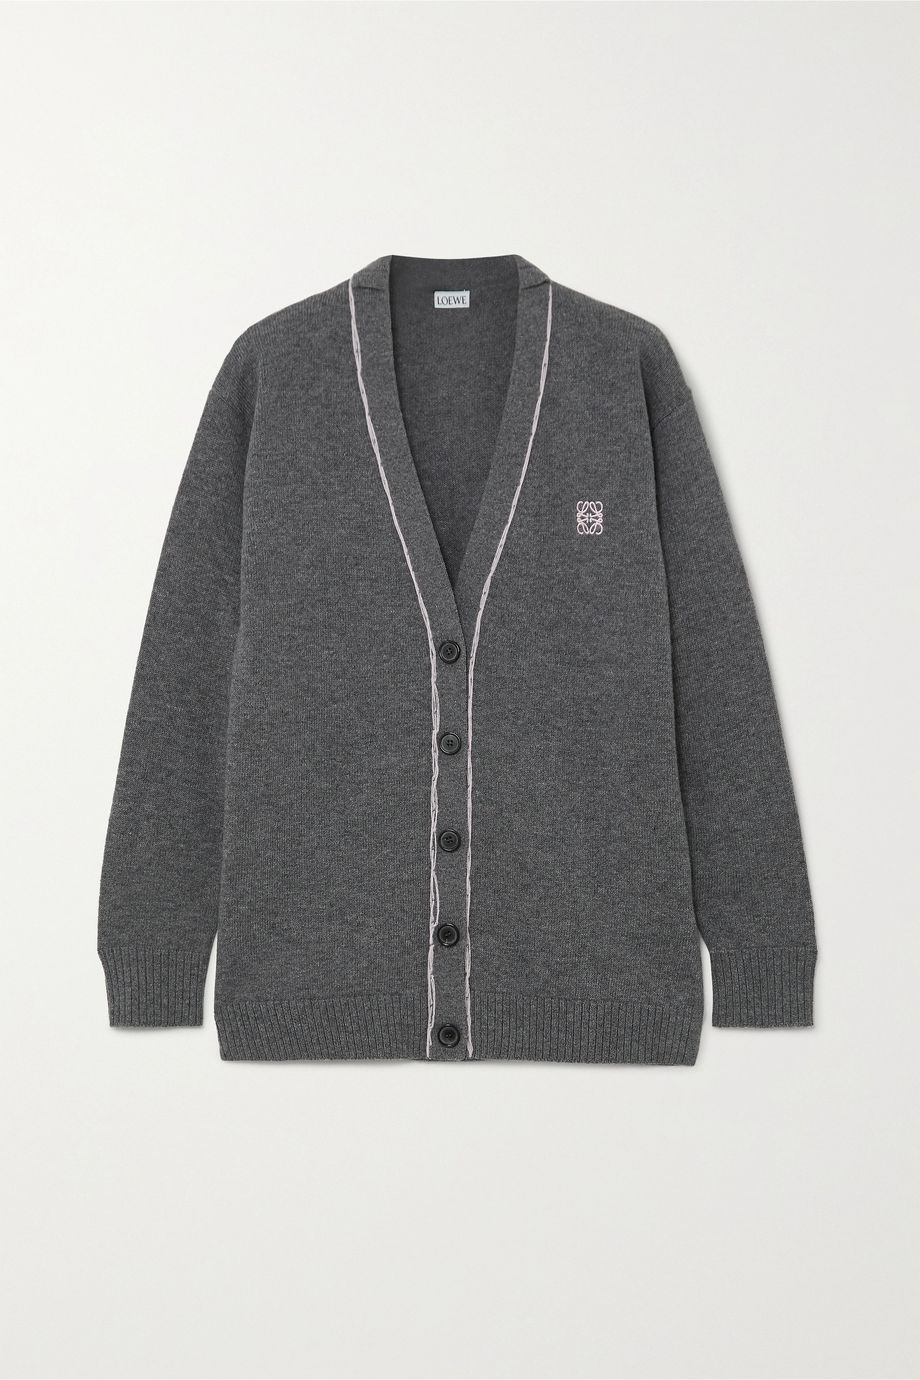 Loewe Embroidered wool cardigan